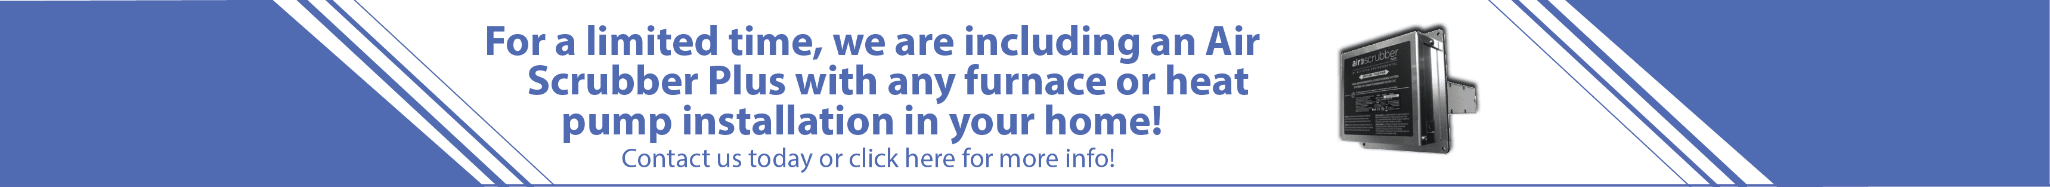 For a limited time, we are including an Air Scrubber Plus with any furnace or heat pump installation in your home!